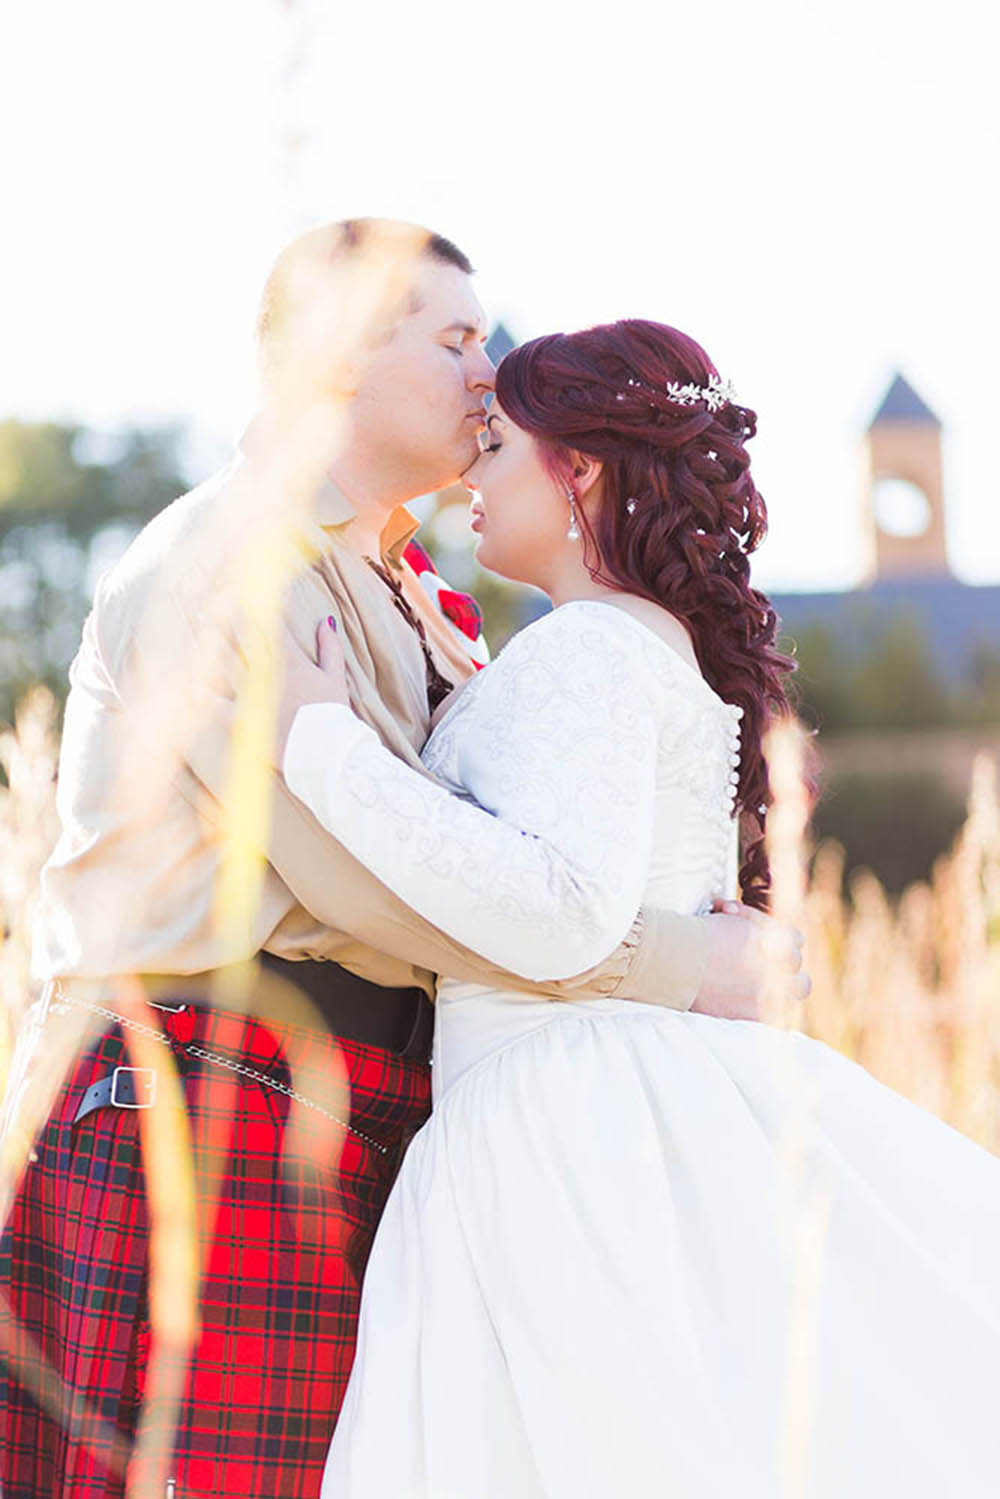 medieval-themed-wedding-medieval-wedding-dgr-photography-castle-wedding-99